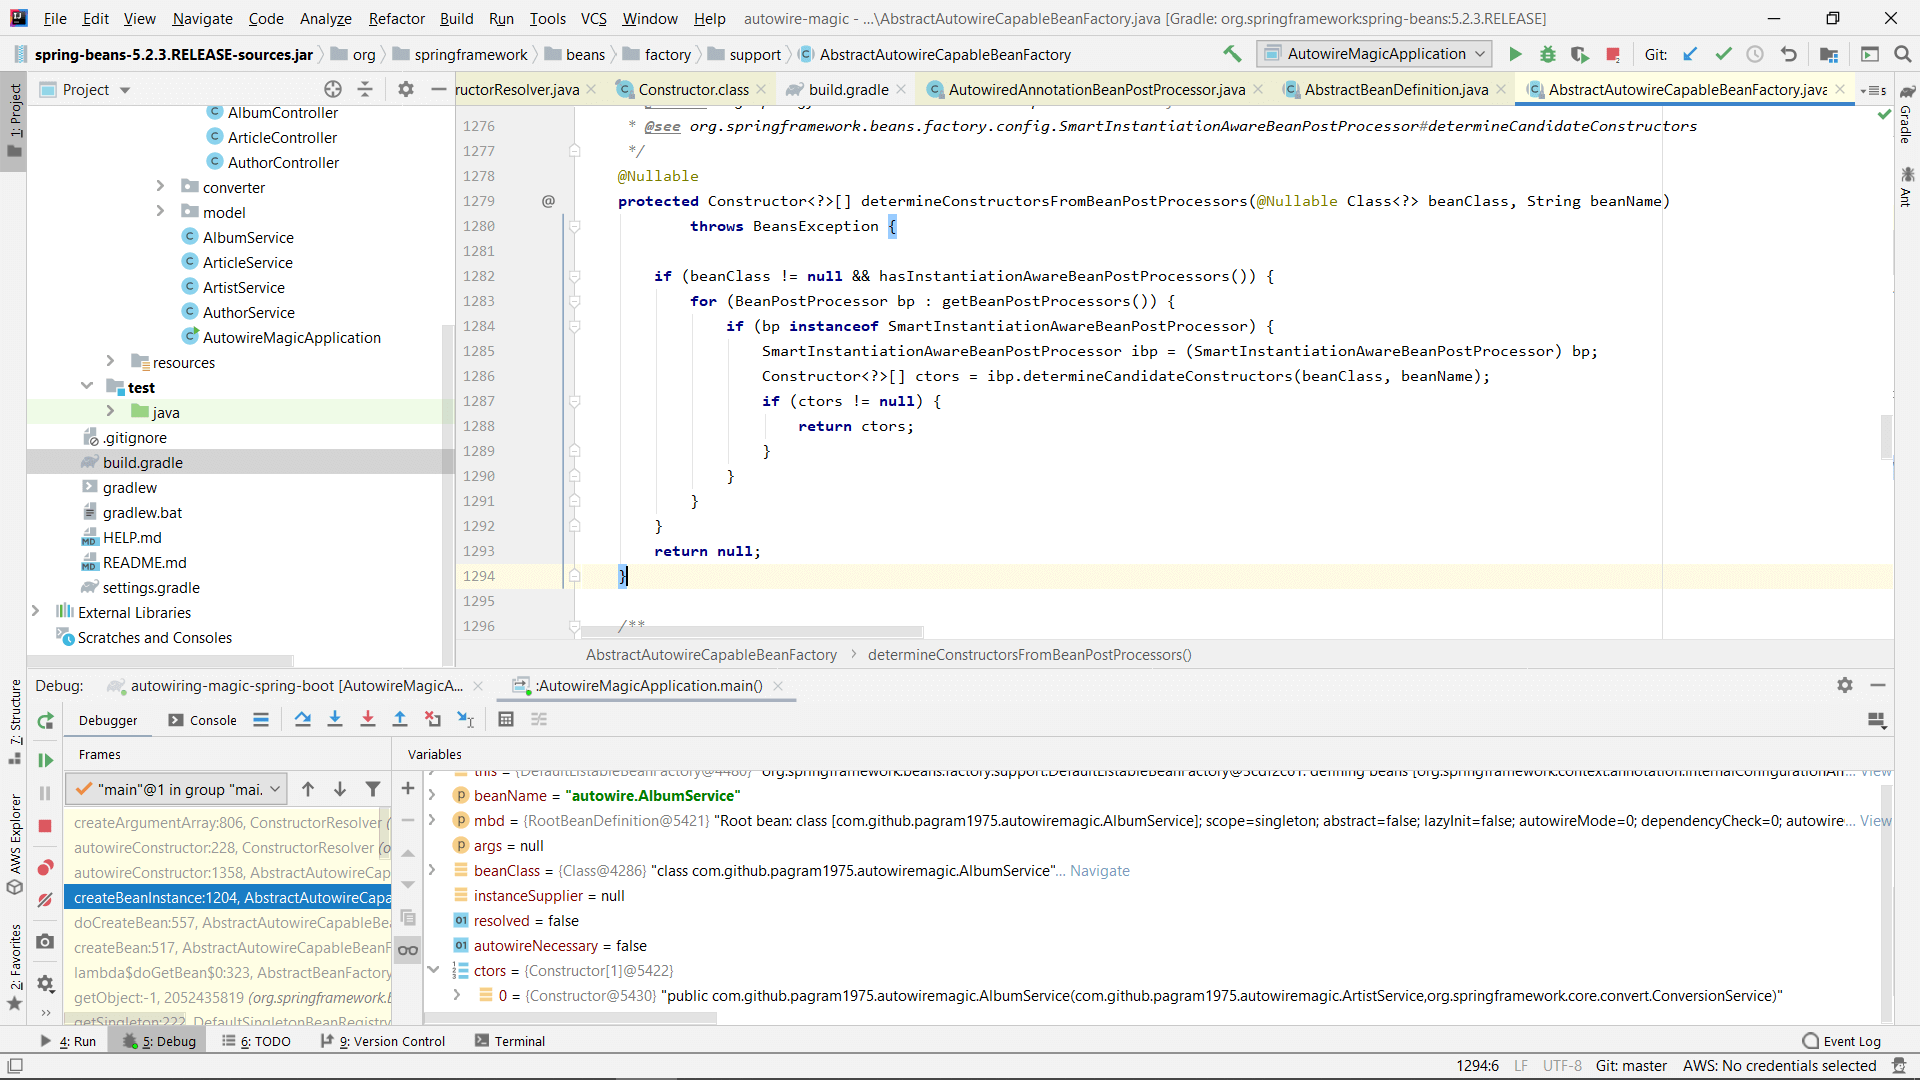 Debugging Spring in IntelliJ Idea to see the code for the determineConstructorsFromBeanPostProcessors method